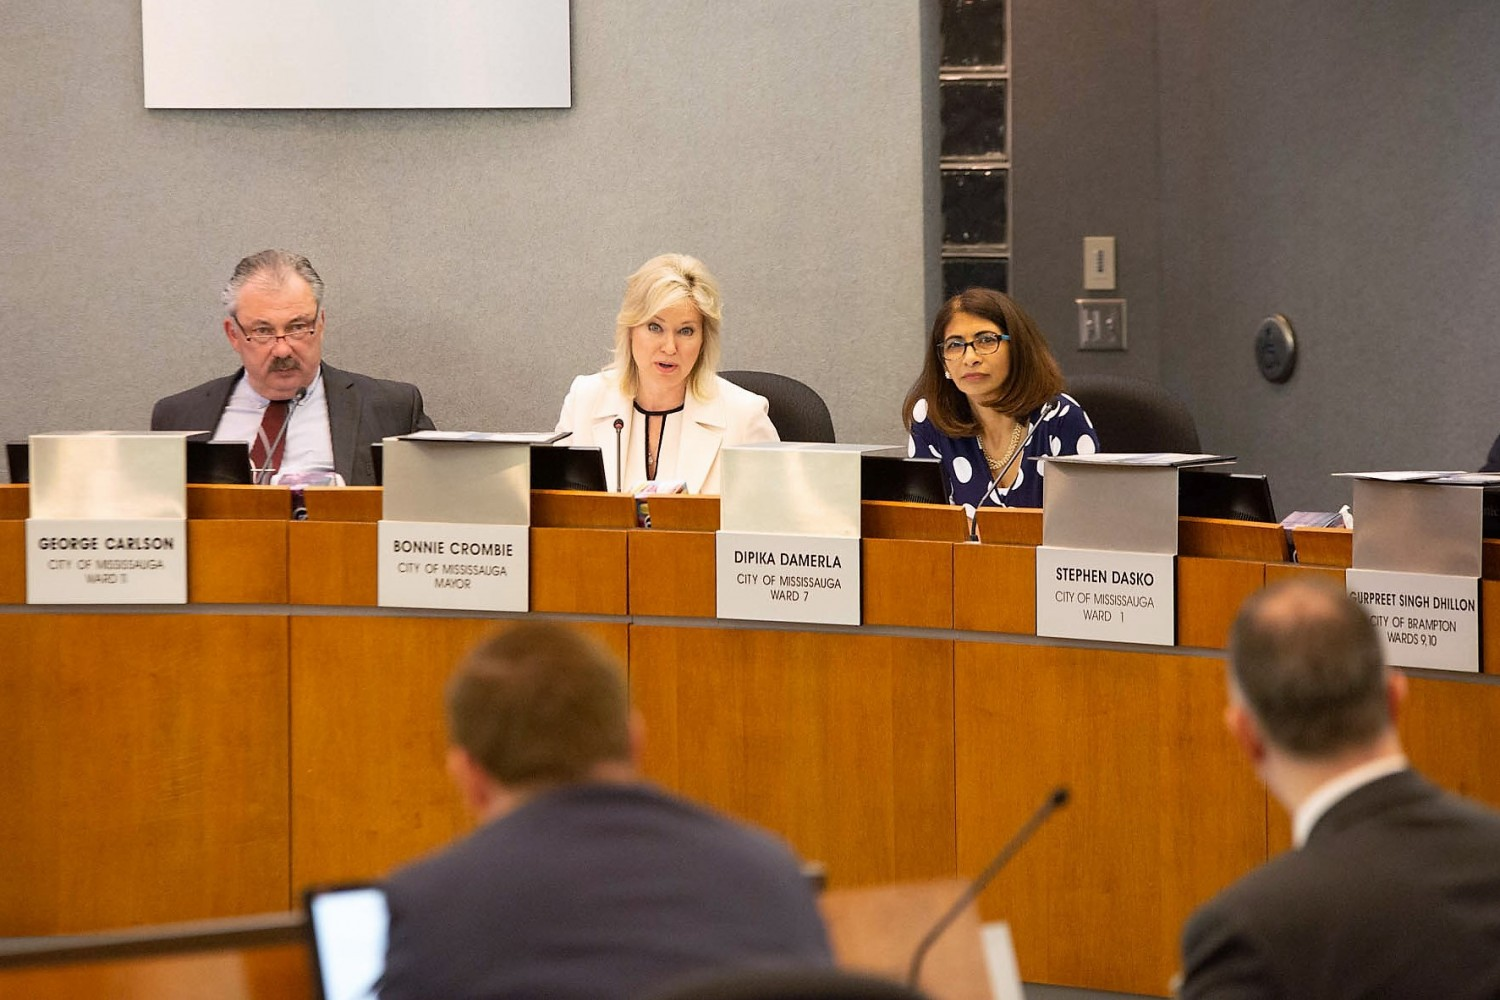 Tensions over Mexit resurface while Deloitte sits in hot seat at regional council